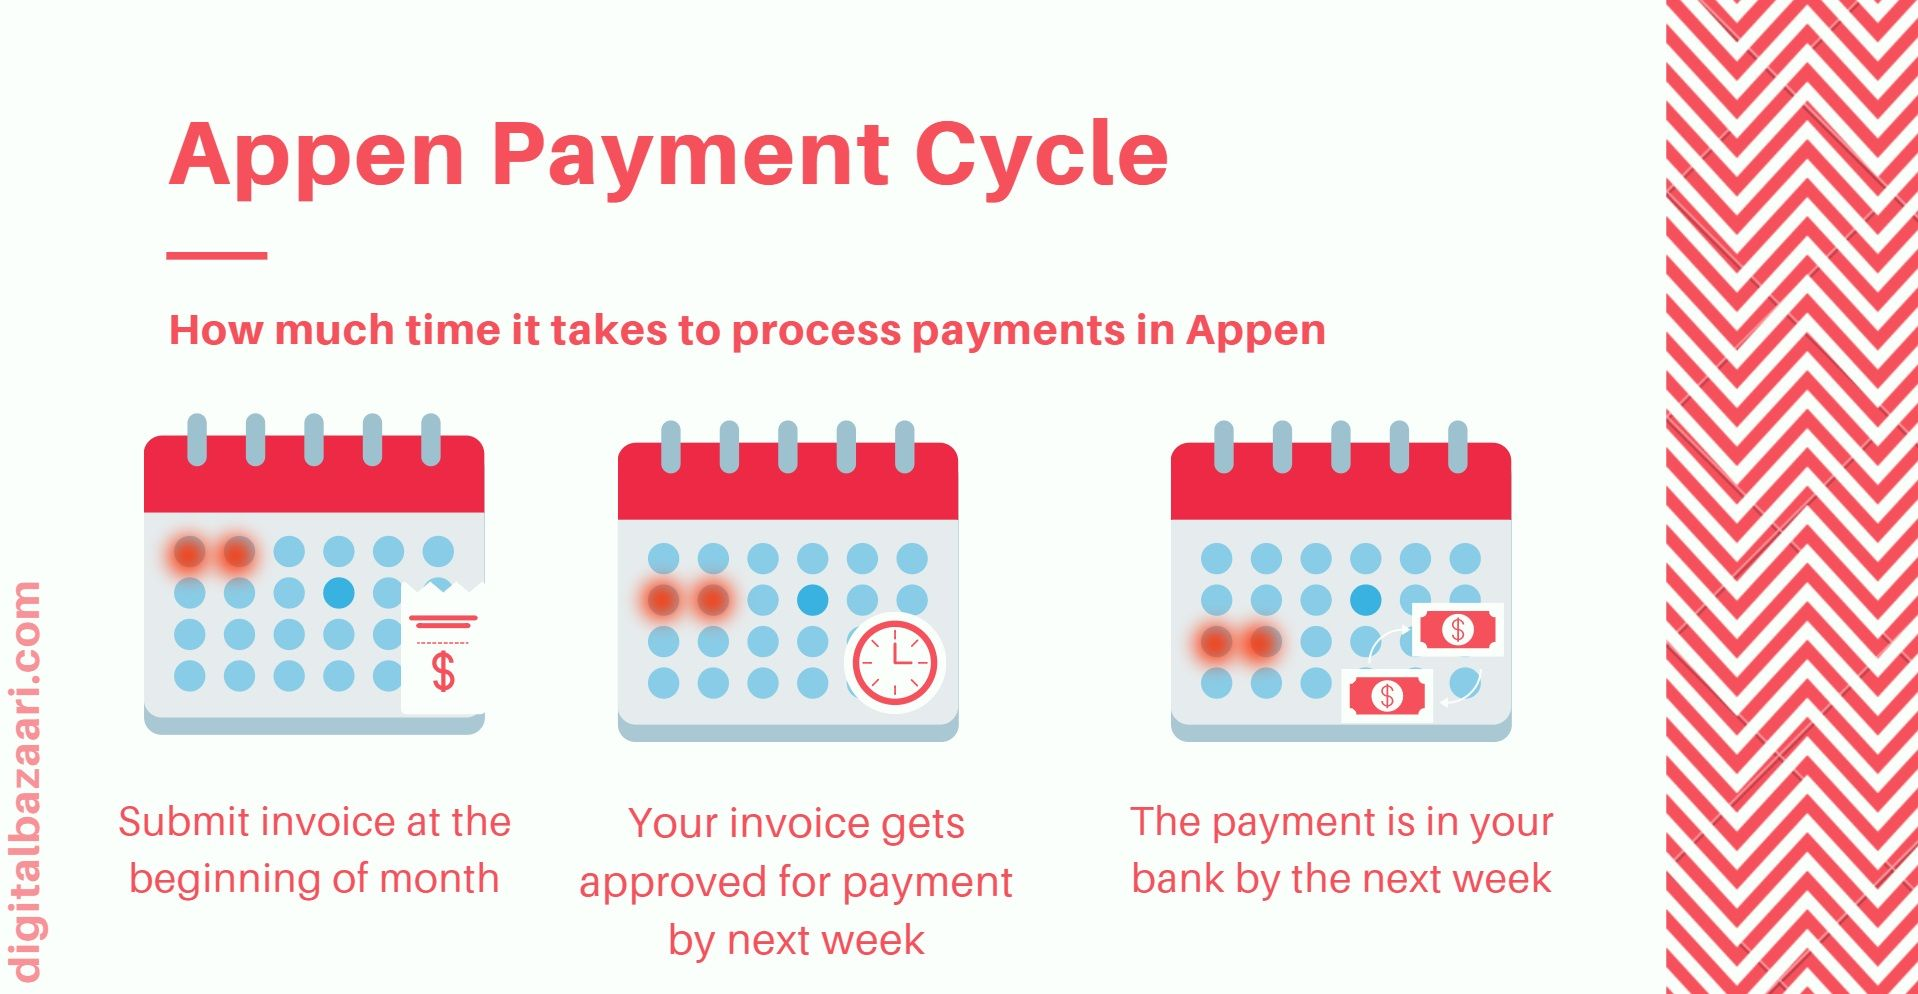 Schedule for appen payments